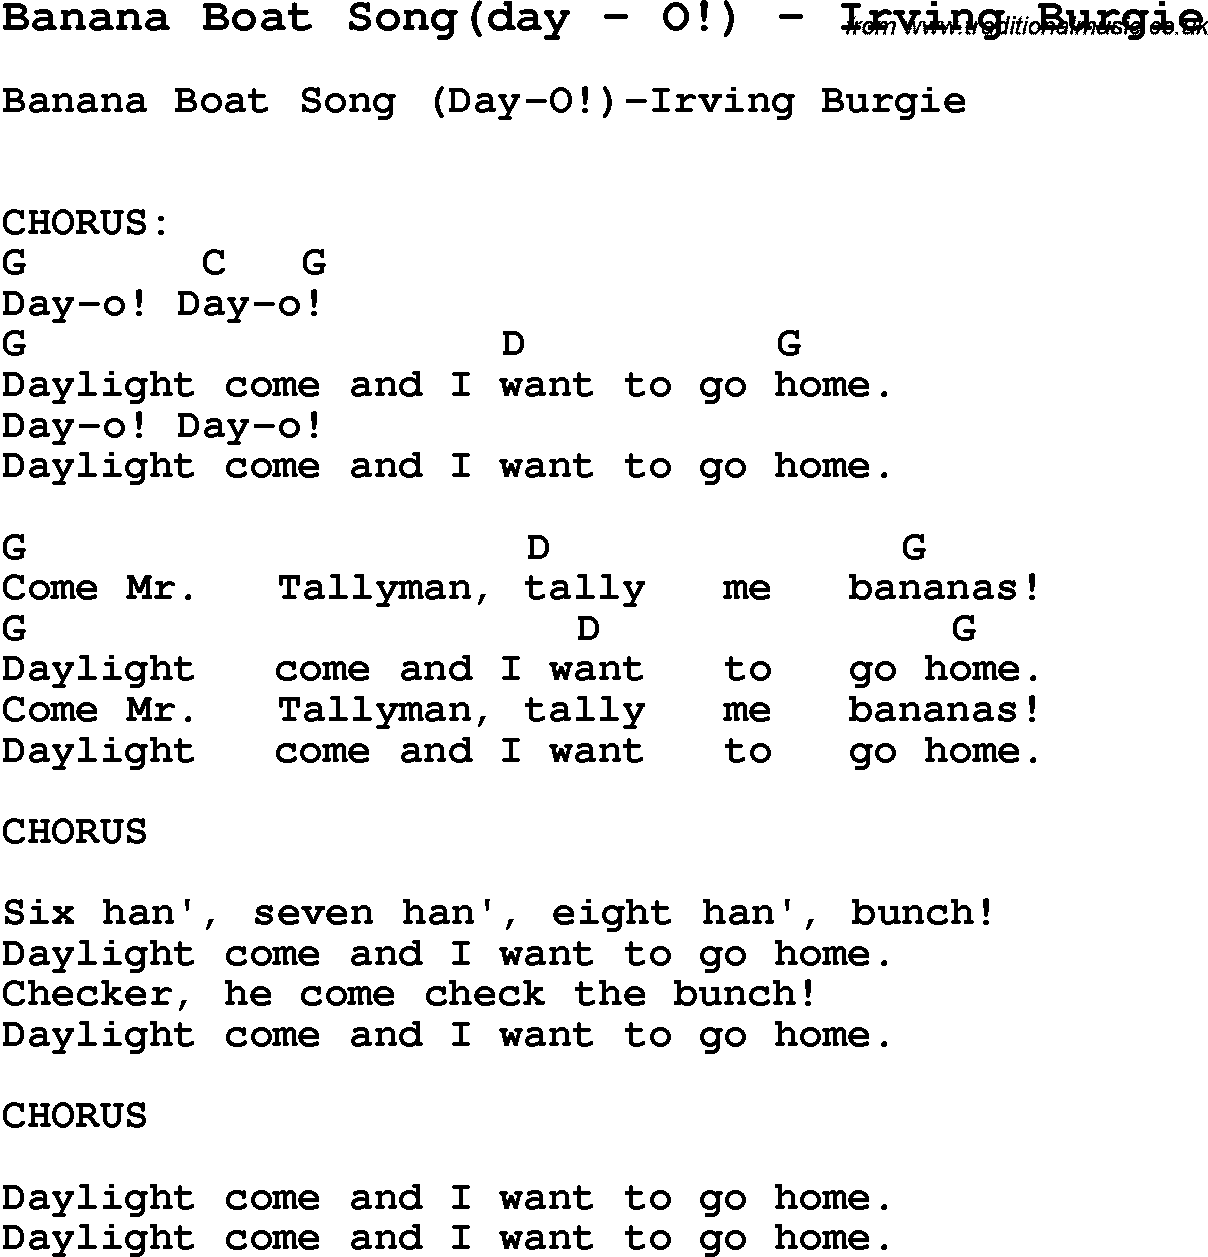 Song banana boat songday by o by irving burgie song lyric for song banana boat songday by o by irving burgie with lyrics hexwebz Image collections